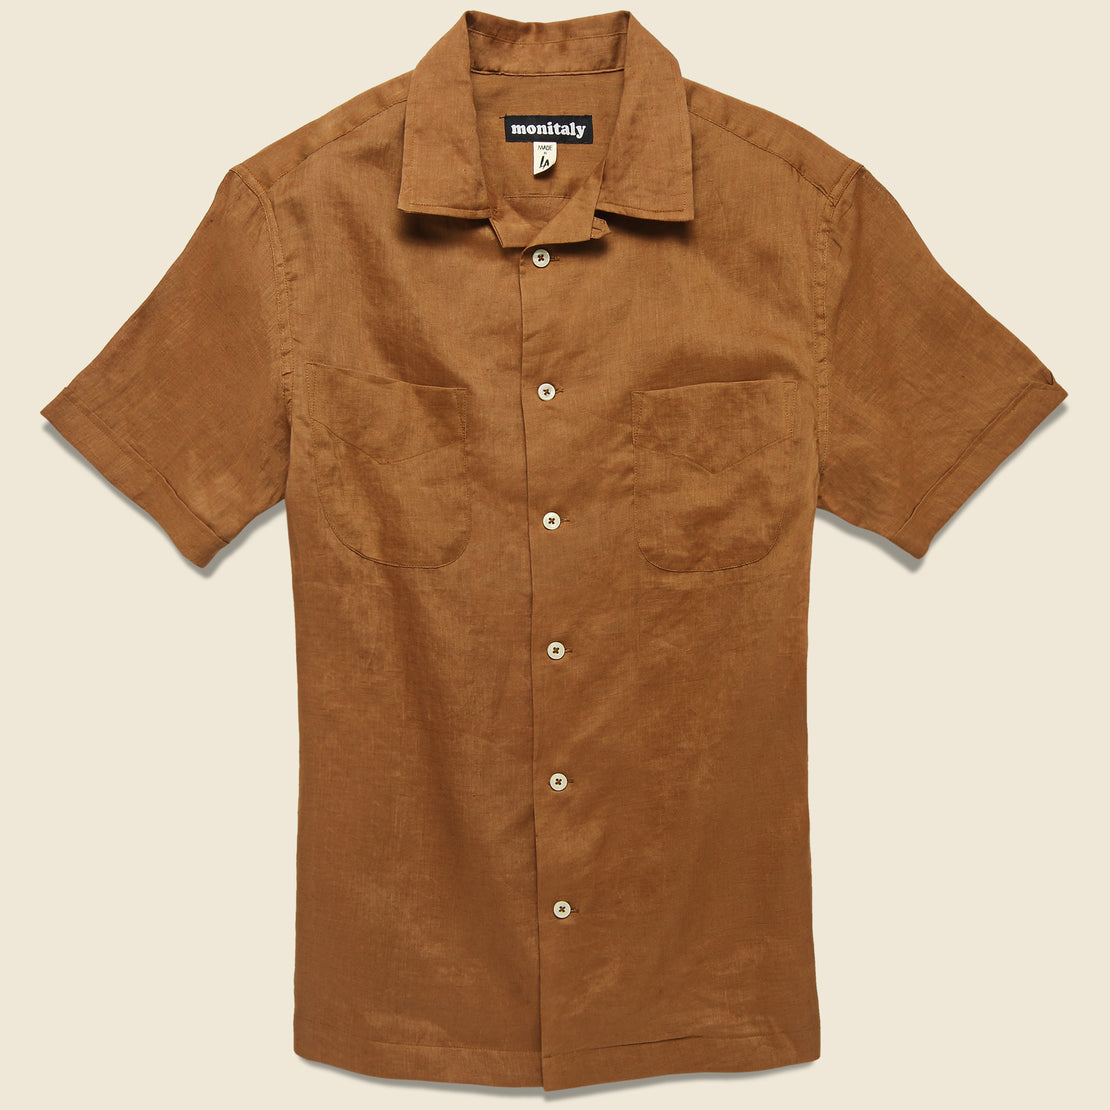 Monitaly Vacation Shirt - Brown